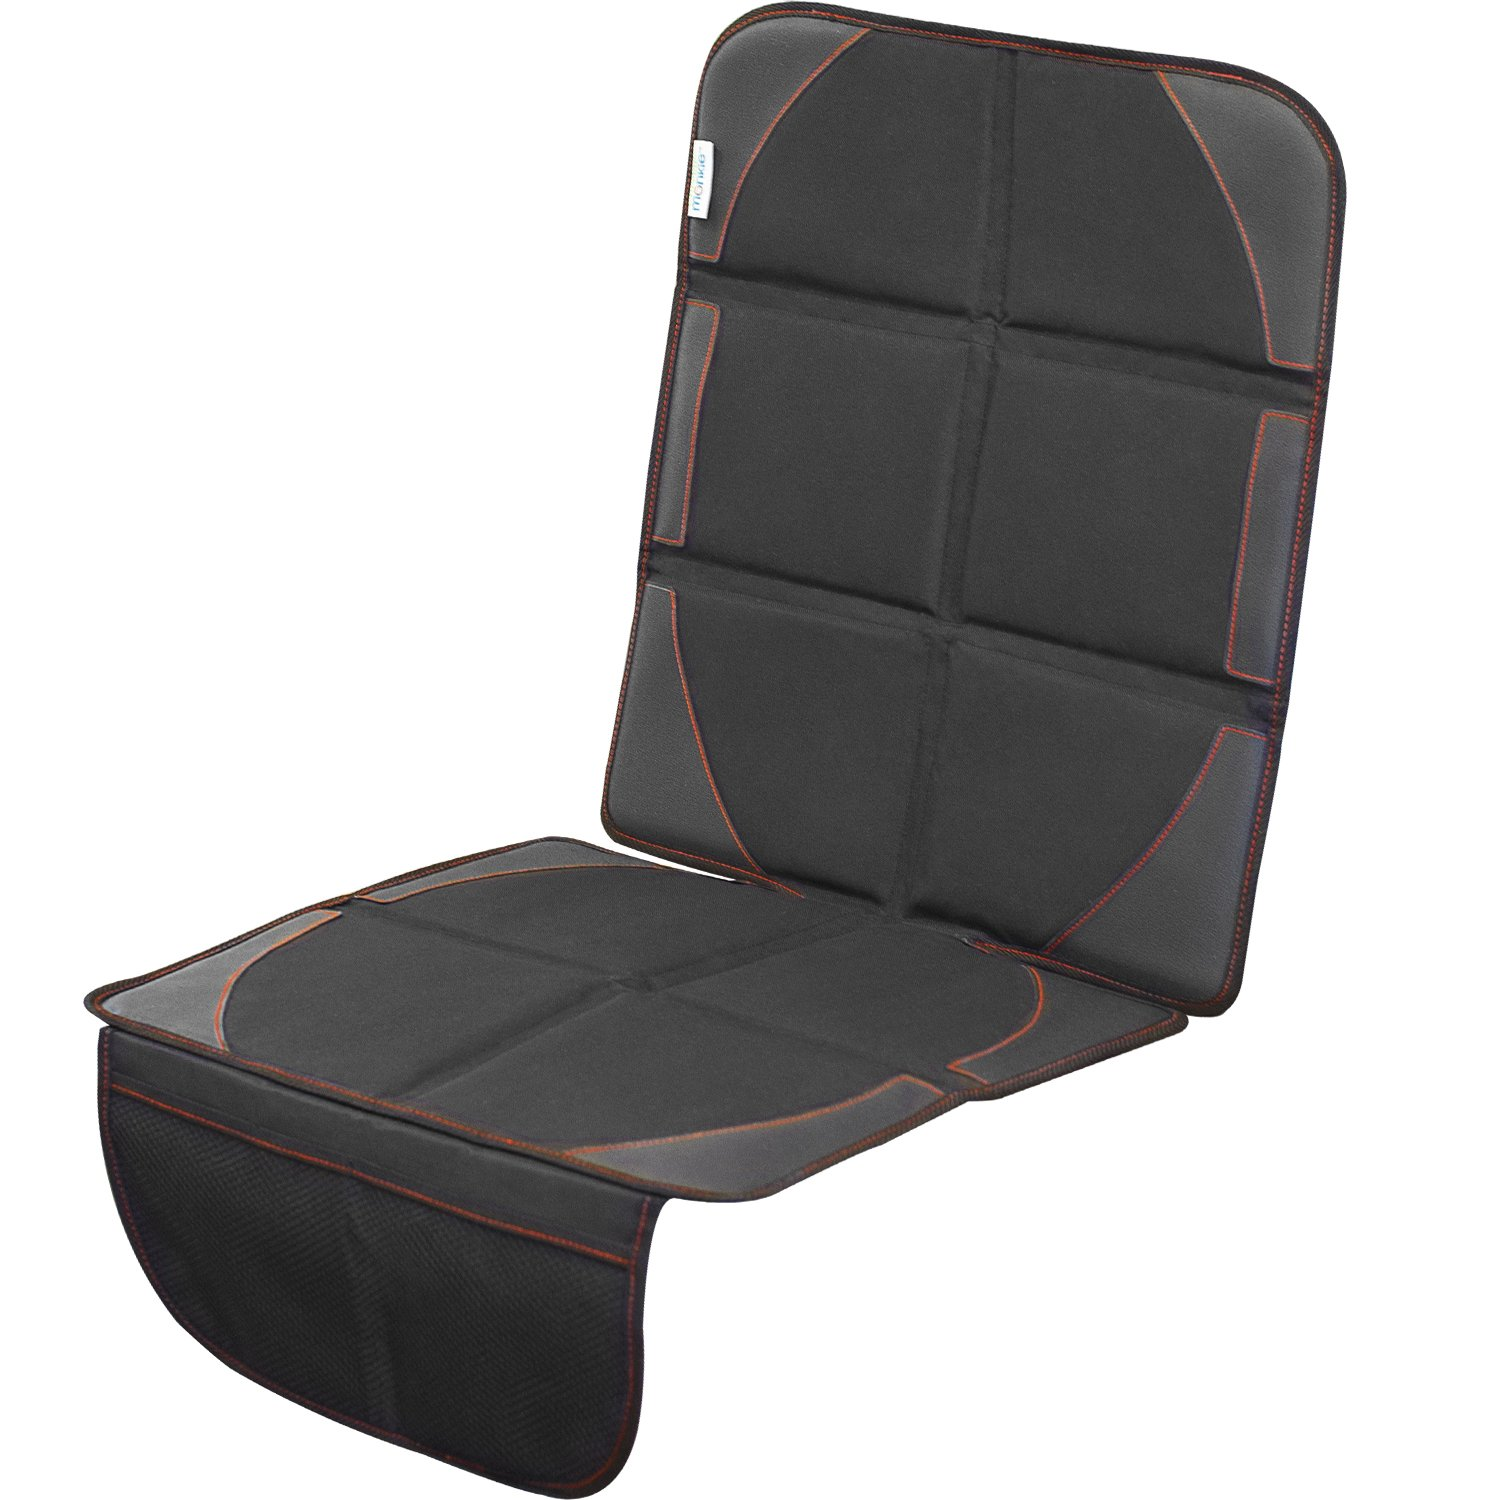 Cheekie Monkie Super Seat Saver Mat, Auto Seat Protector (Seat Cover) with Waterproof Material, Extra strength Non-slip Backing, and Sturdy Foam Pads Fits Most Vehicles Cherry Creek Inc.